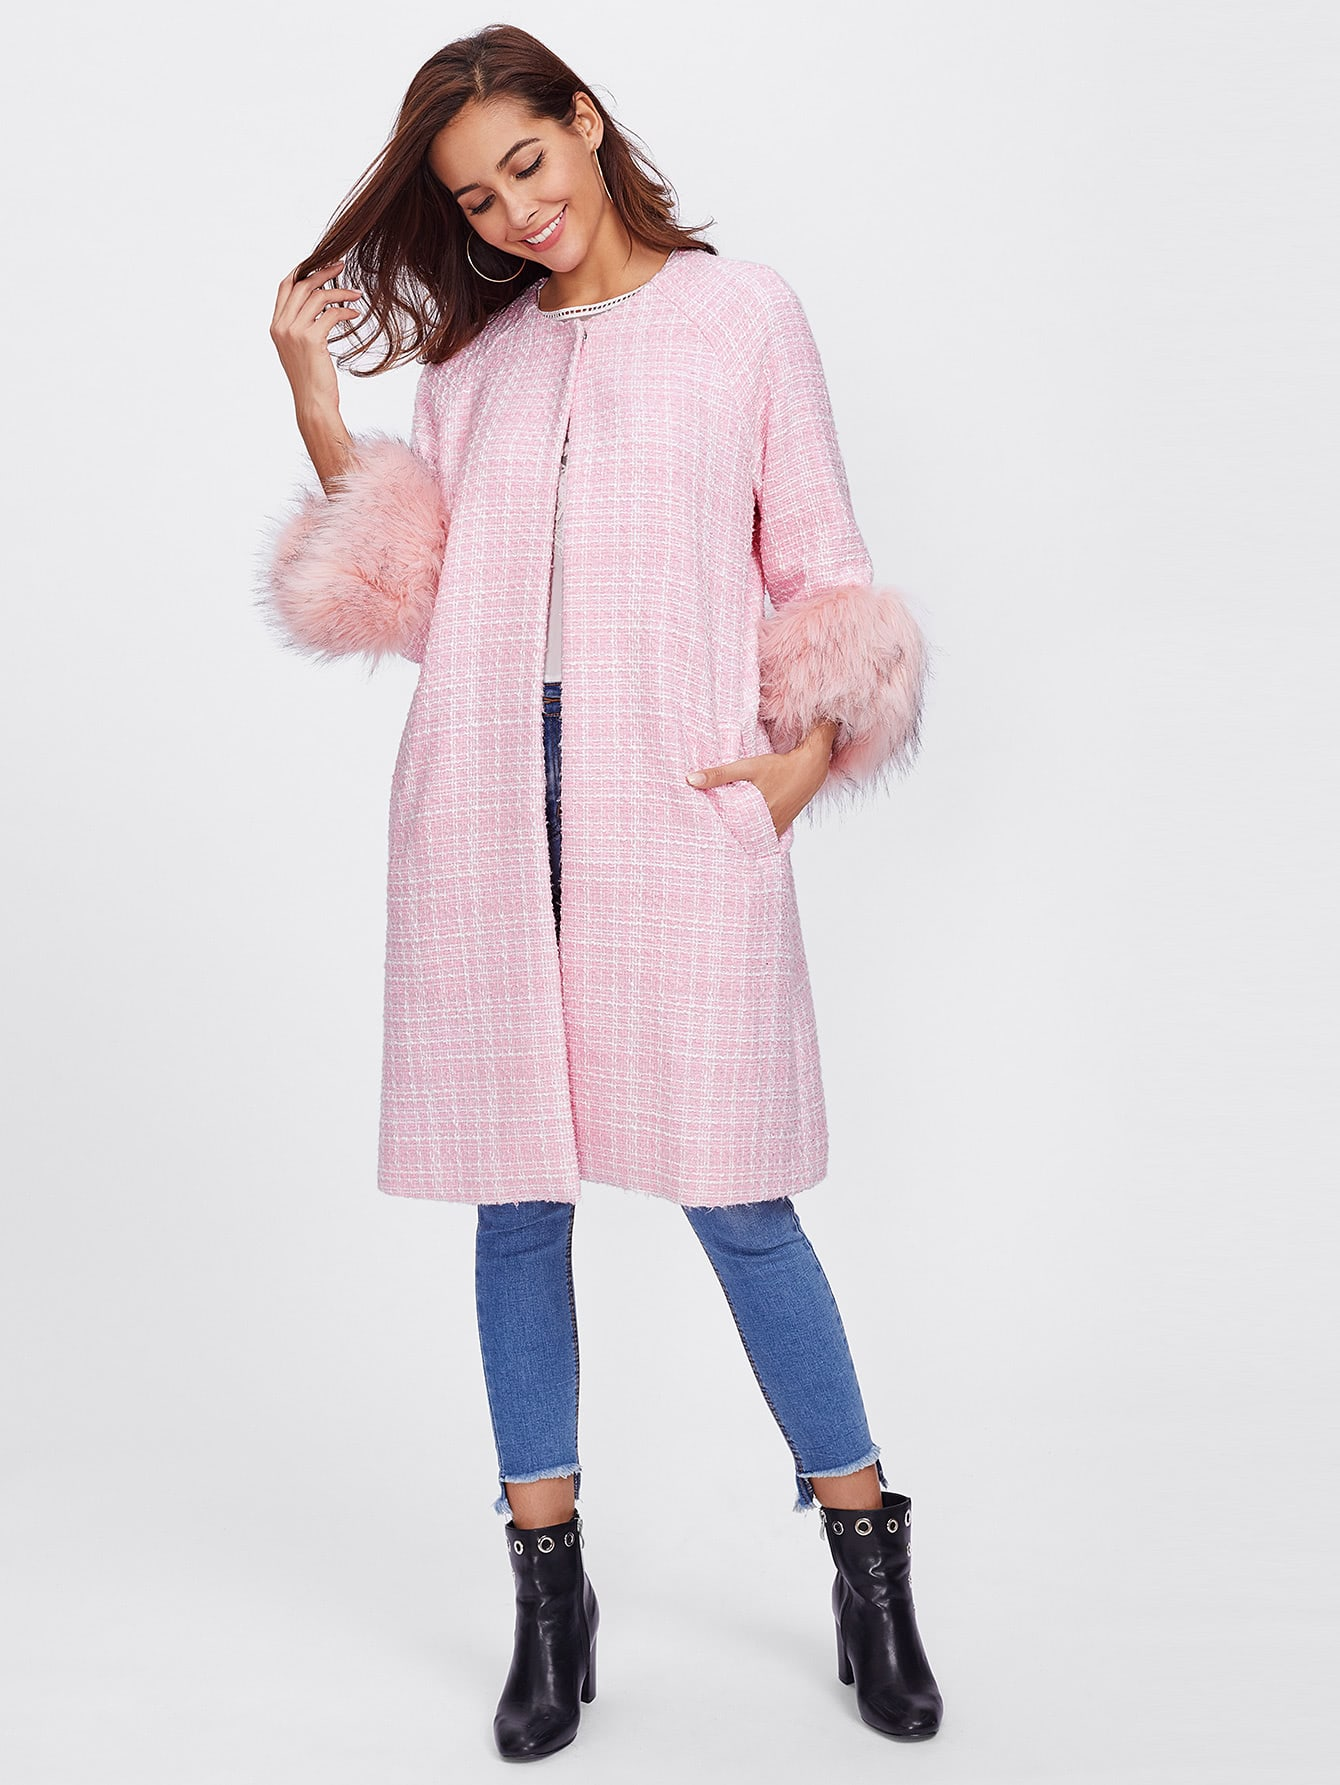 Contrast Faux Fur Trim Raglan Sleeve Tweed Coat outer171101702